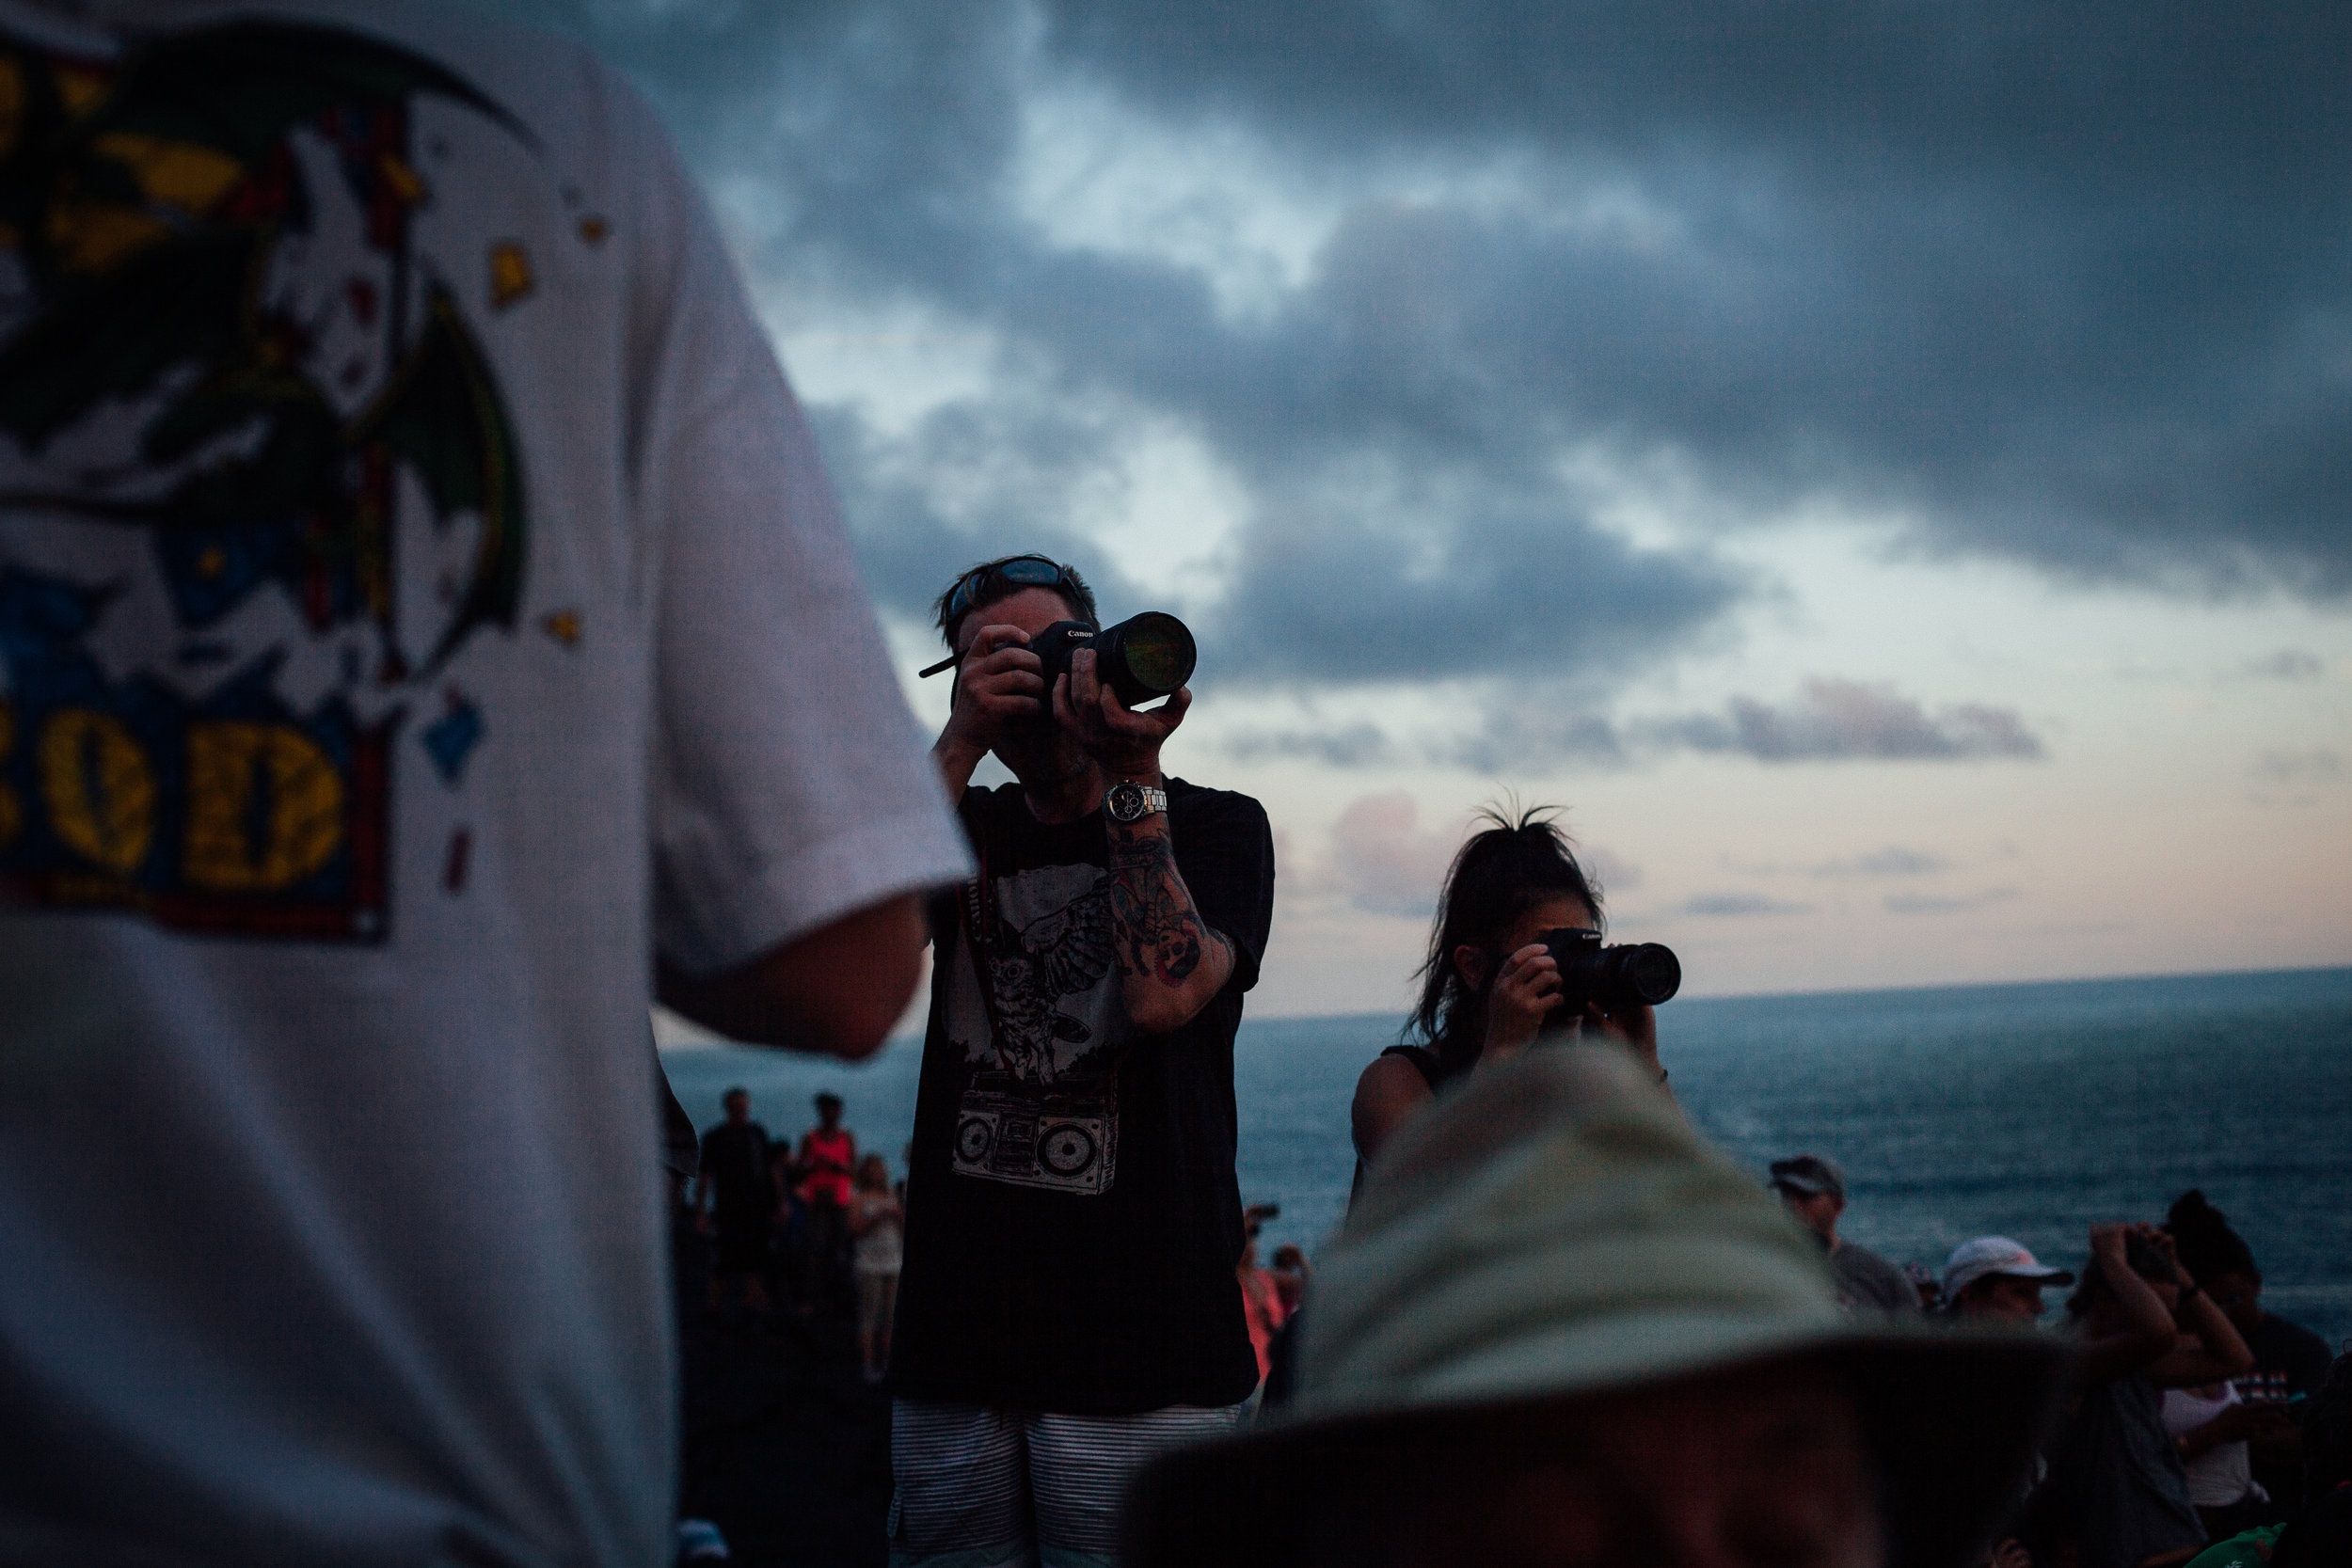 Photographers capturing the lava as it flows into the ocean